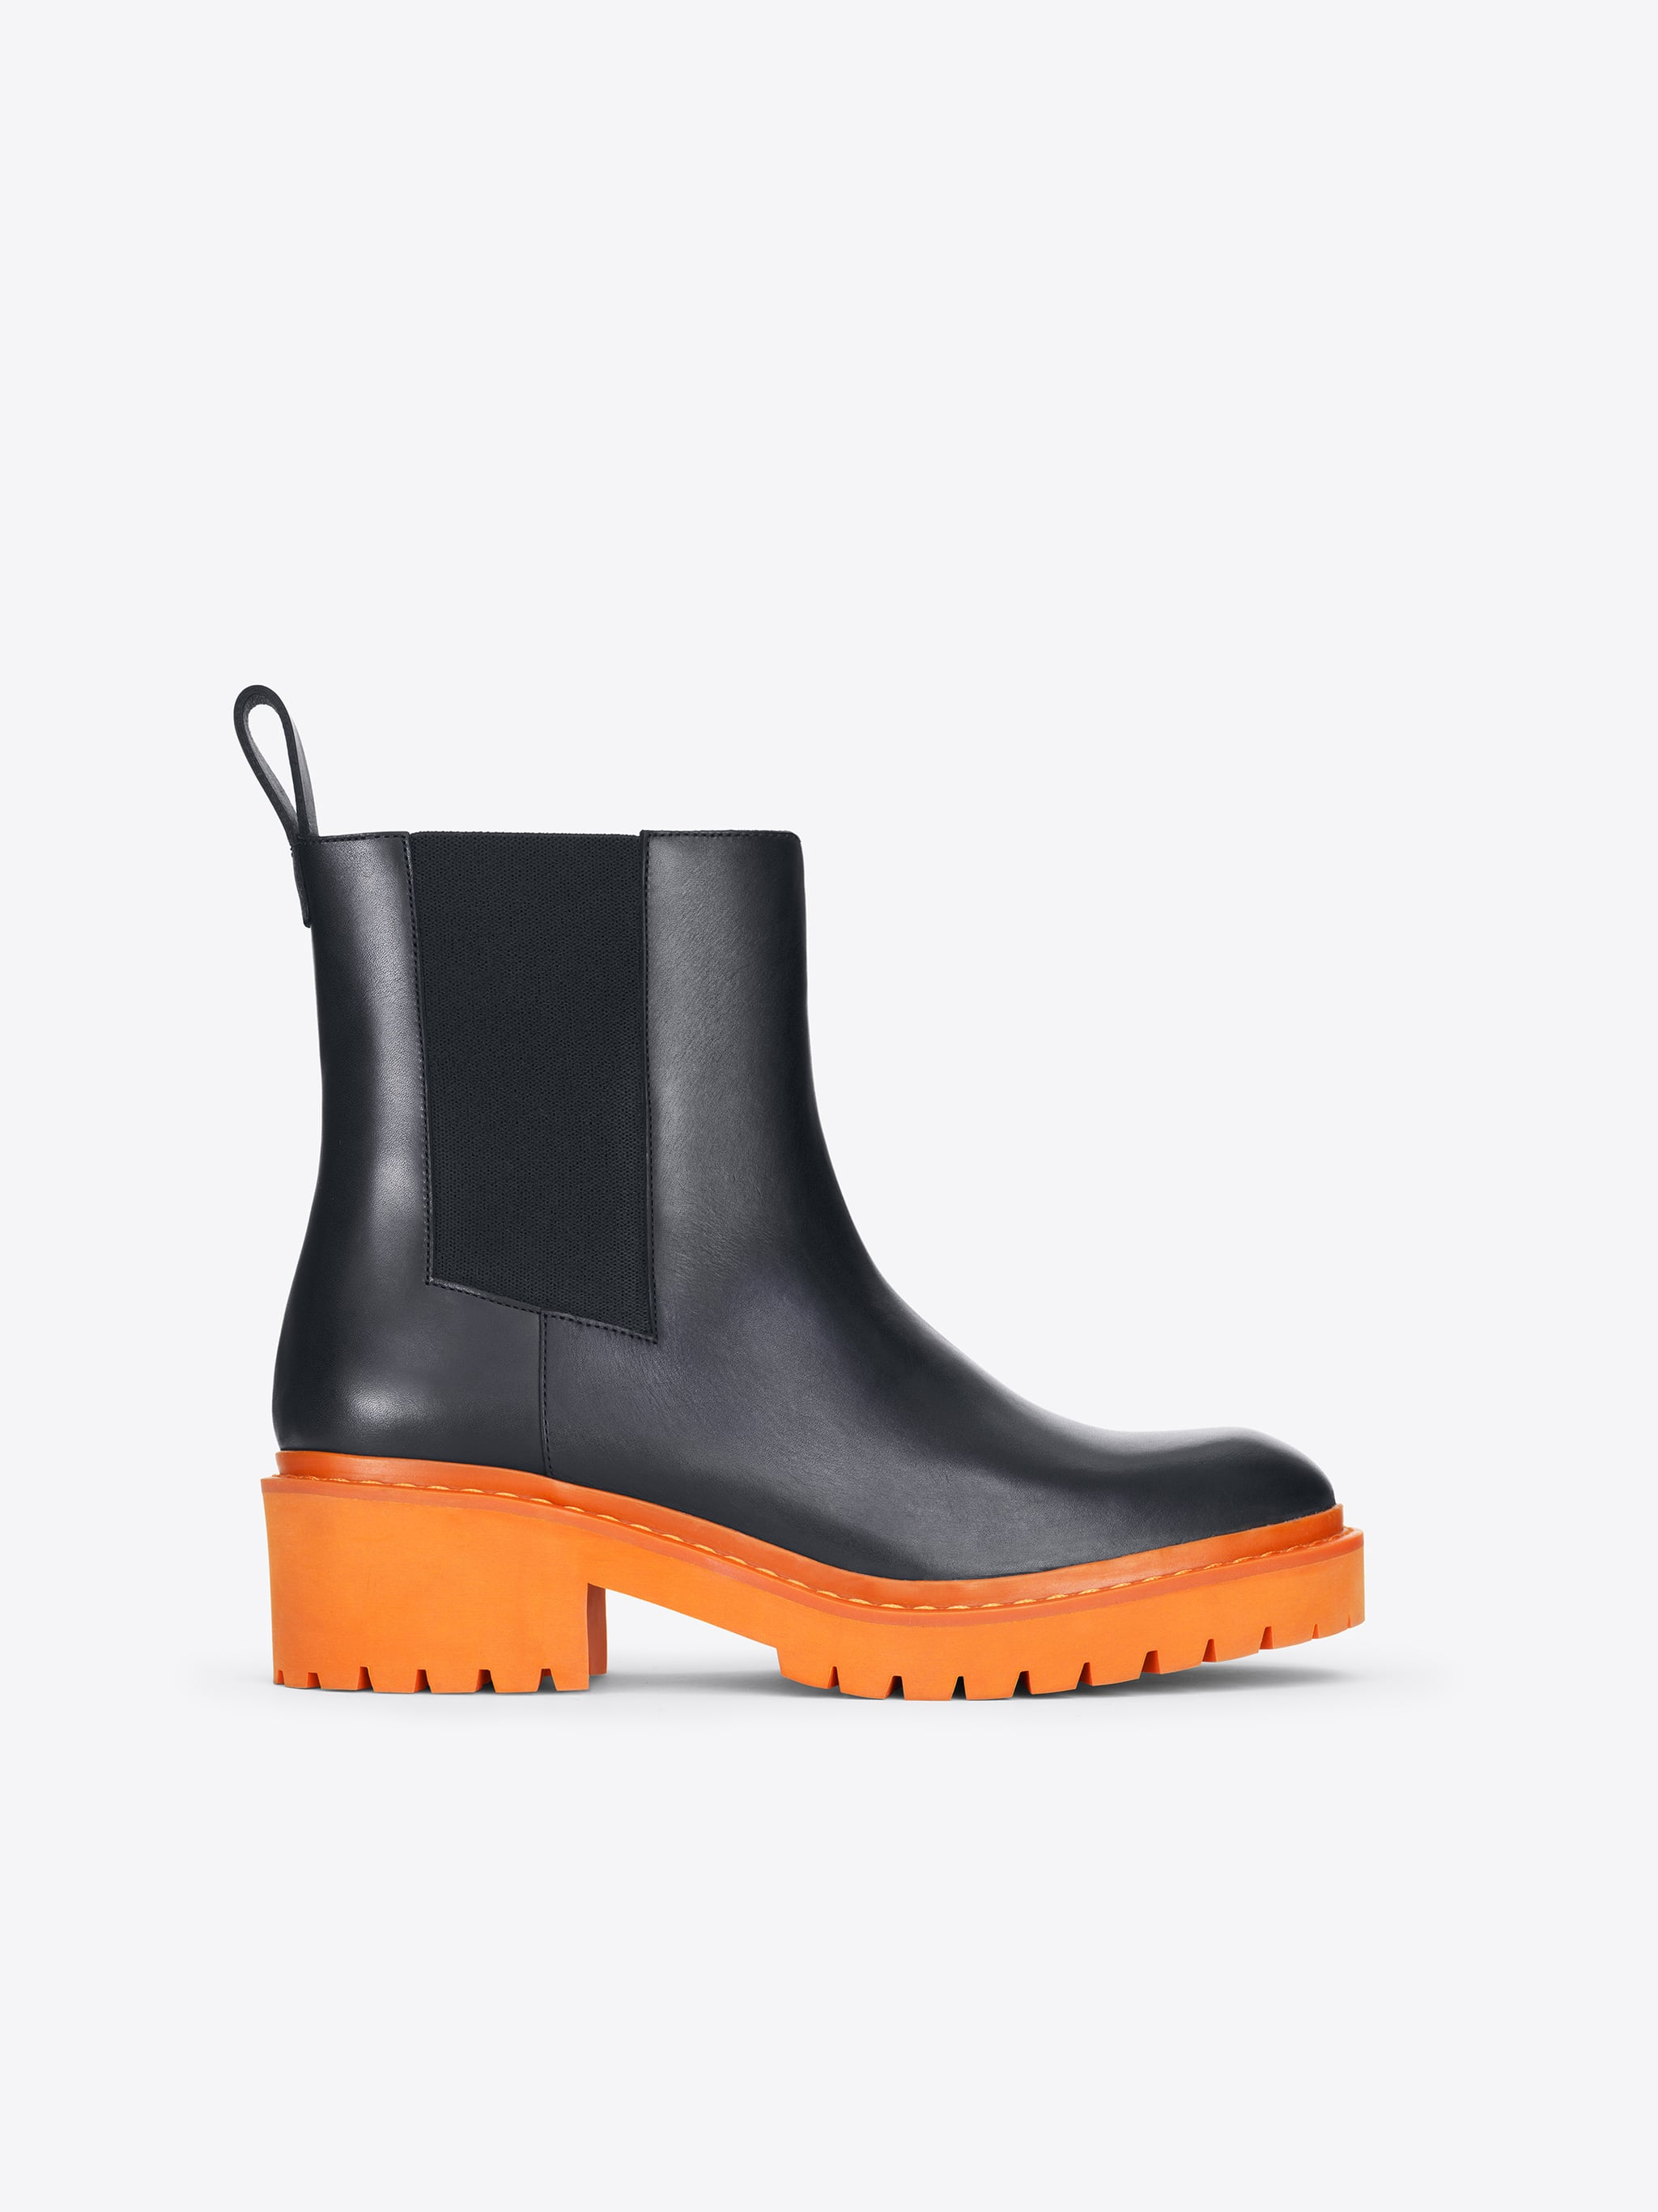 Leather Chelsea Boots 200 Start Your Shopping Kenzo X H M Is Here Popsugar Fashion Photo 15